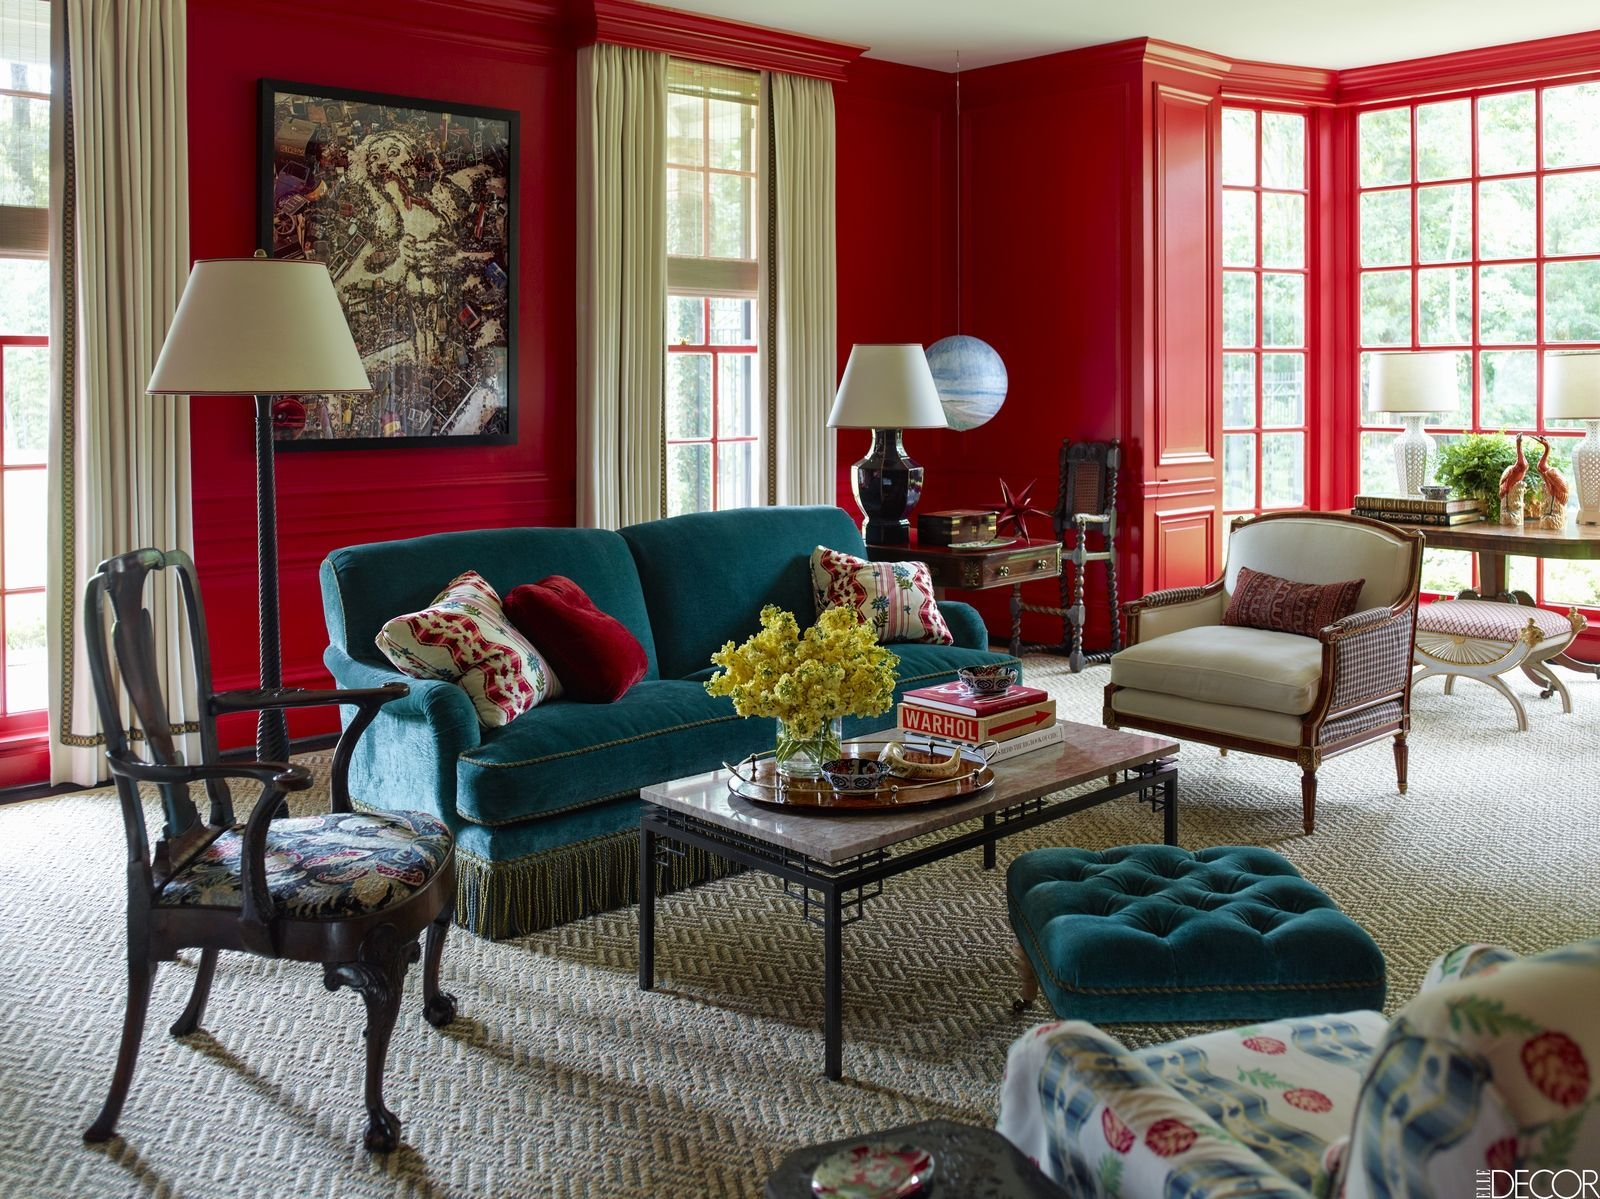 HOUSE TOUR: Color Takes Center Stage In A Bold Houston Home | Pinterest